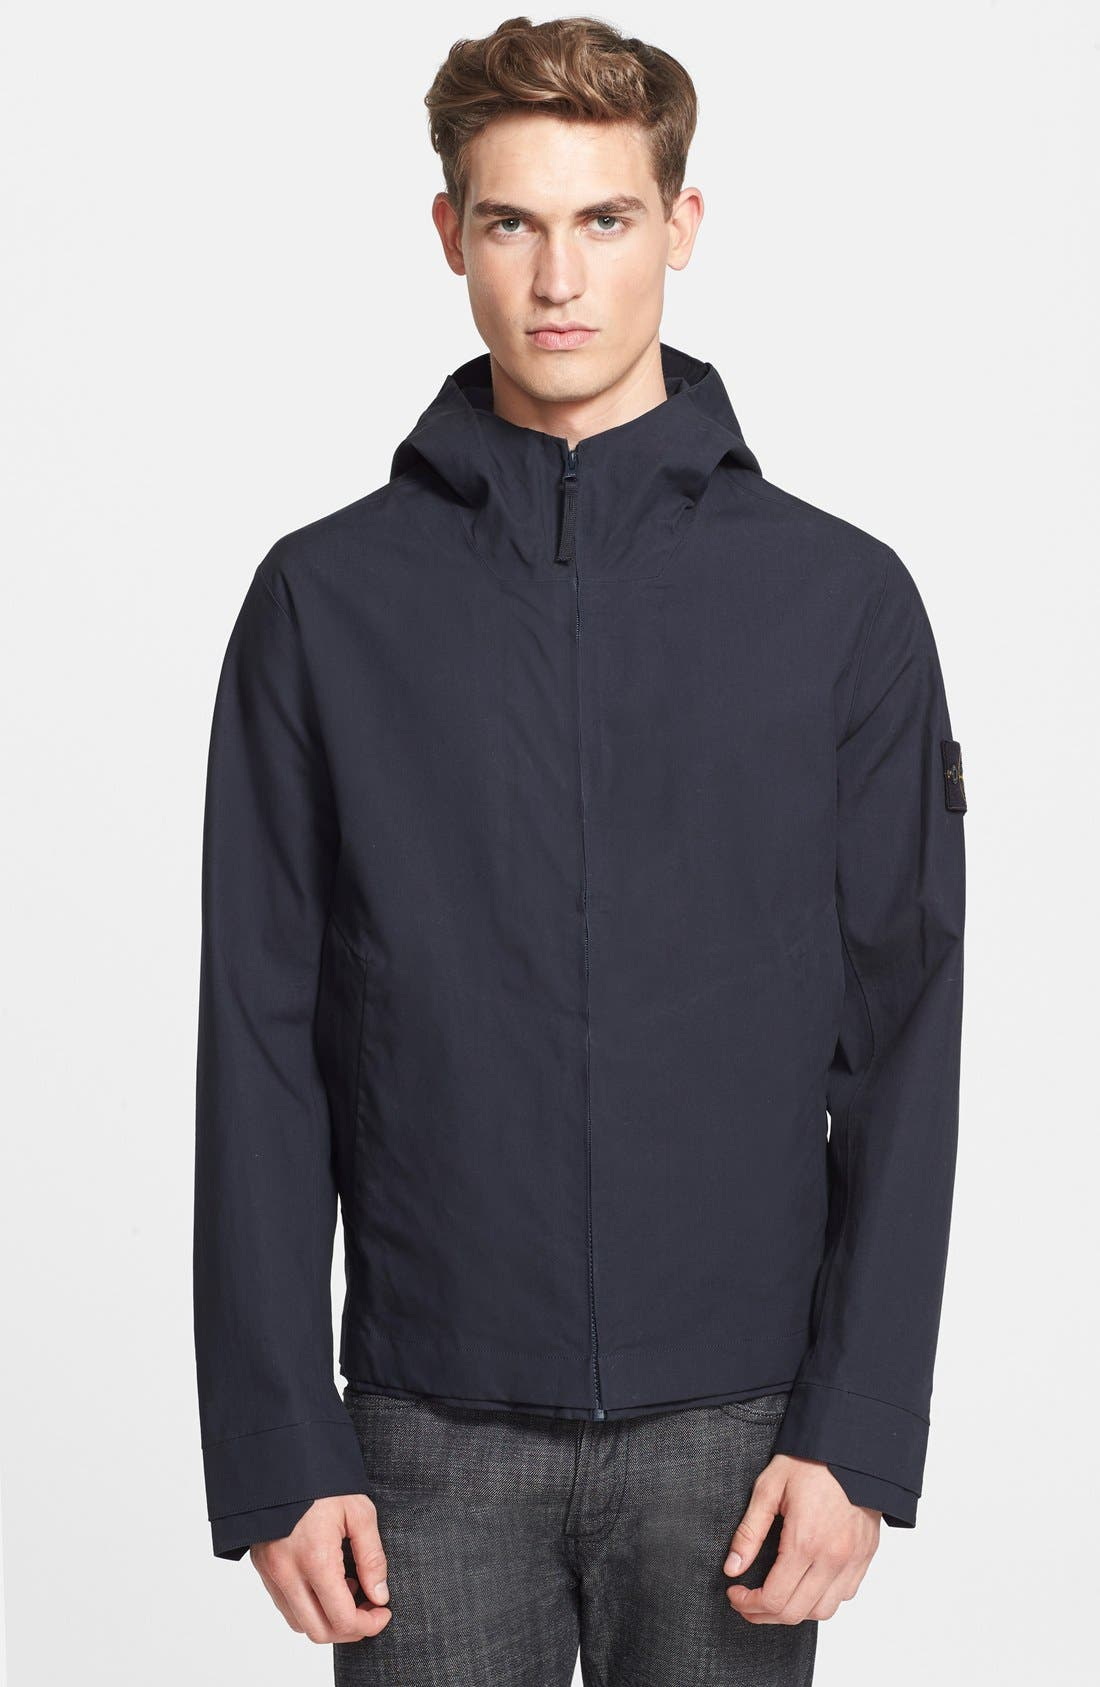 '3L Performance' Hooded Jacket,                             Main thumbnail 1, color,                             410